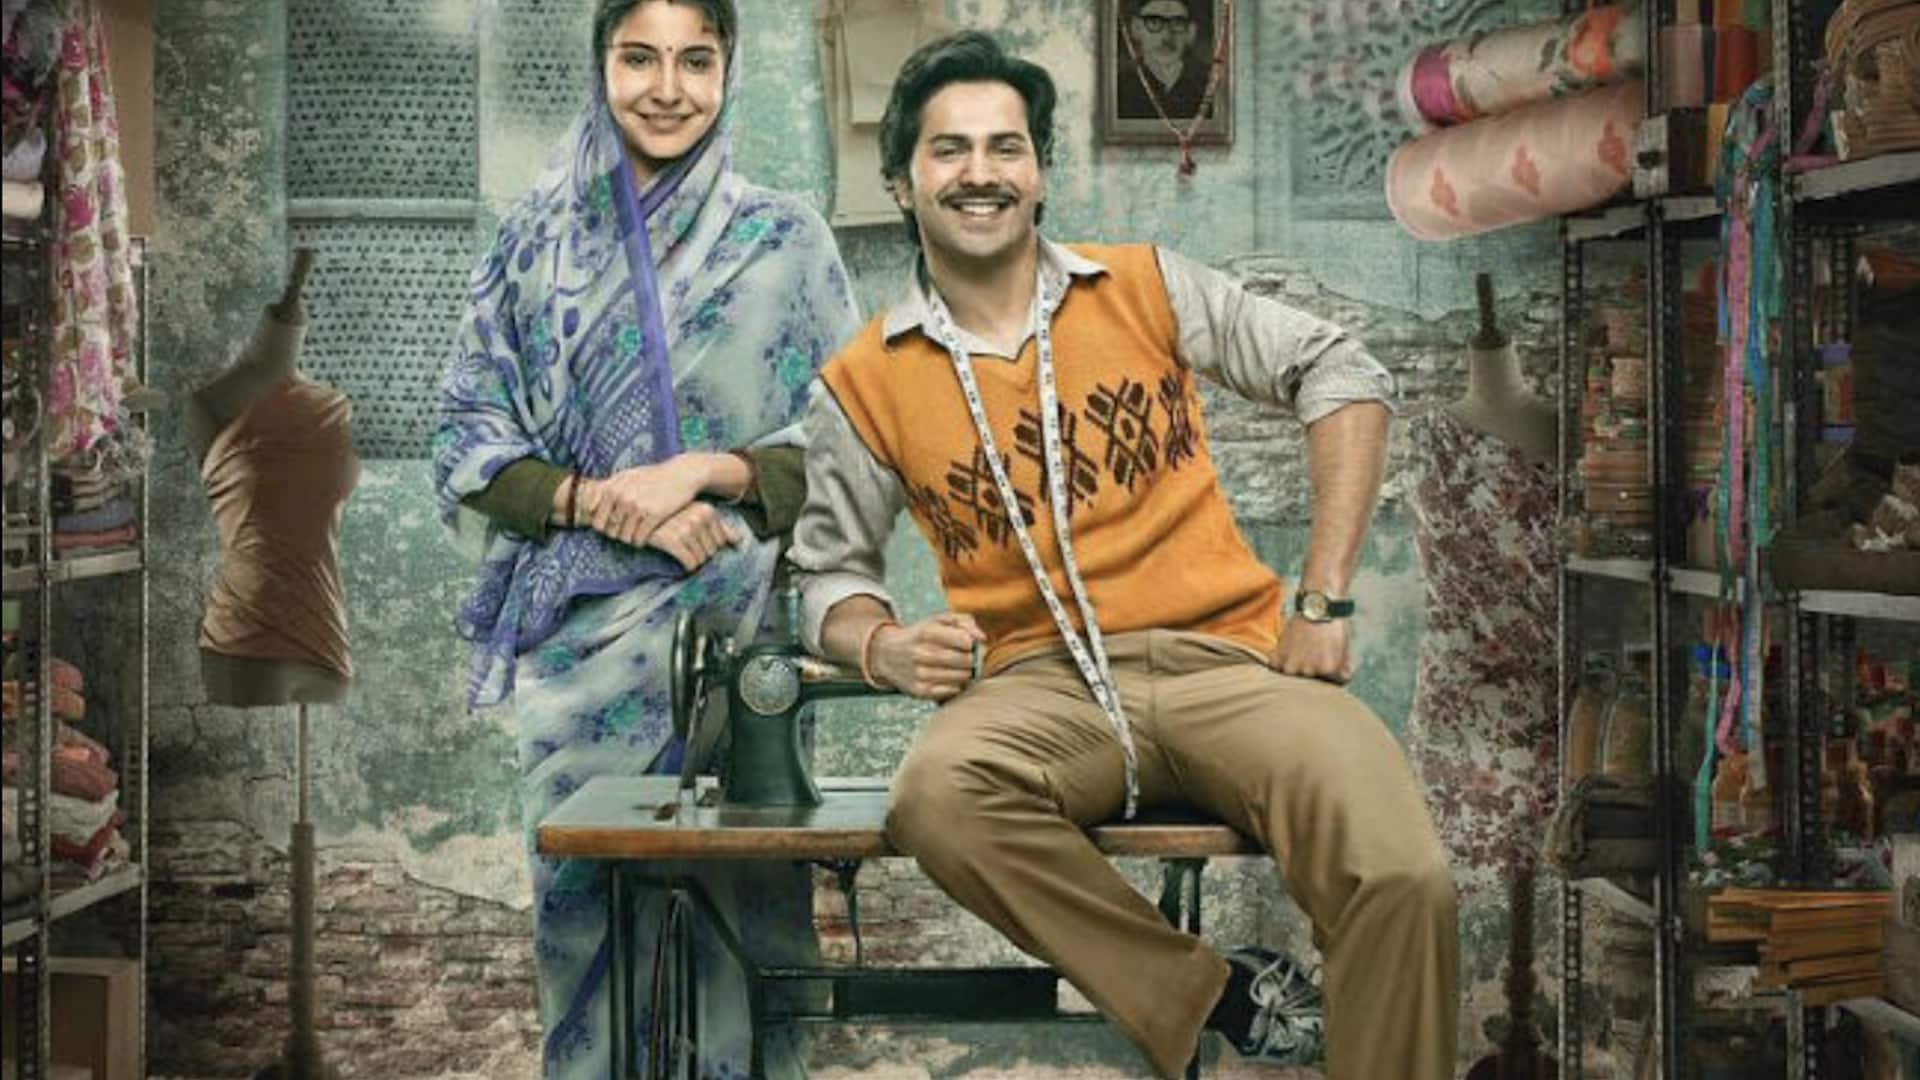 sui dhaka movie trailer launched today, see how anushka and varun perform